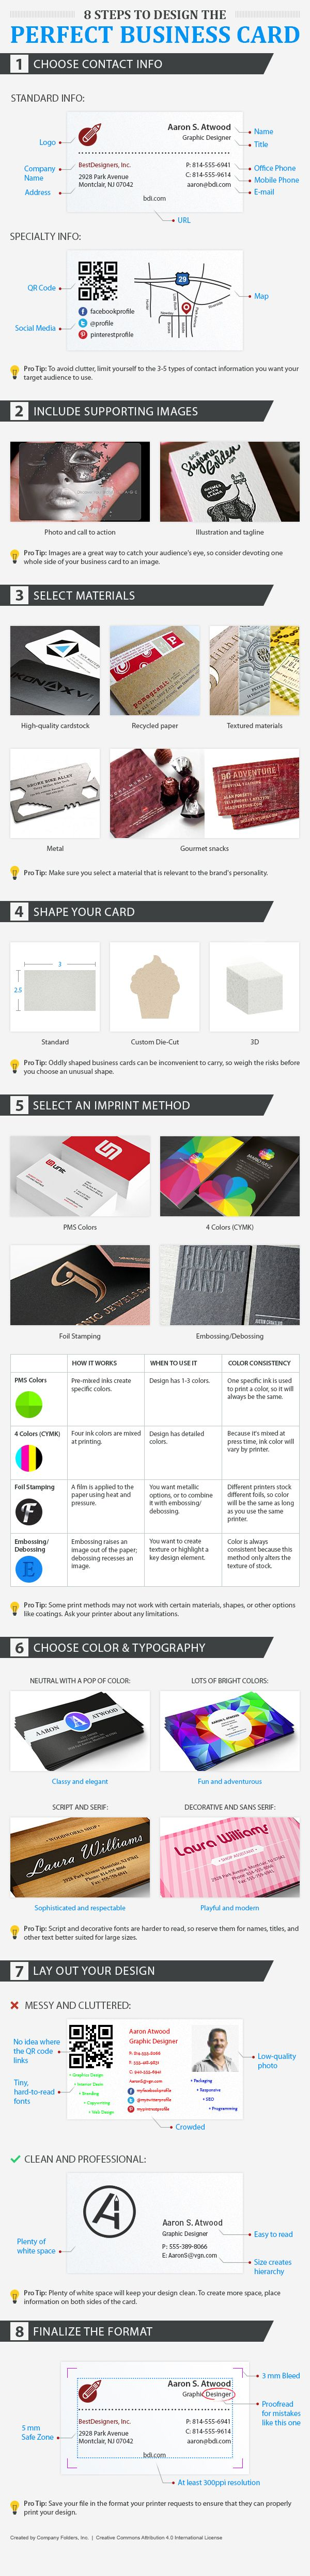 8 Pro Tips To Design The Perfect Business Card